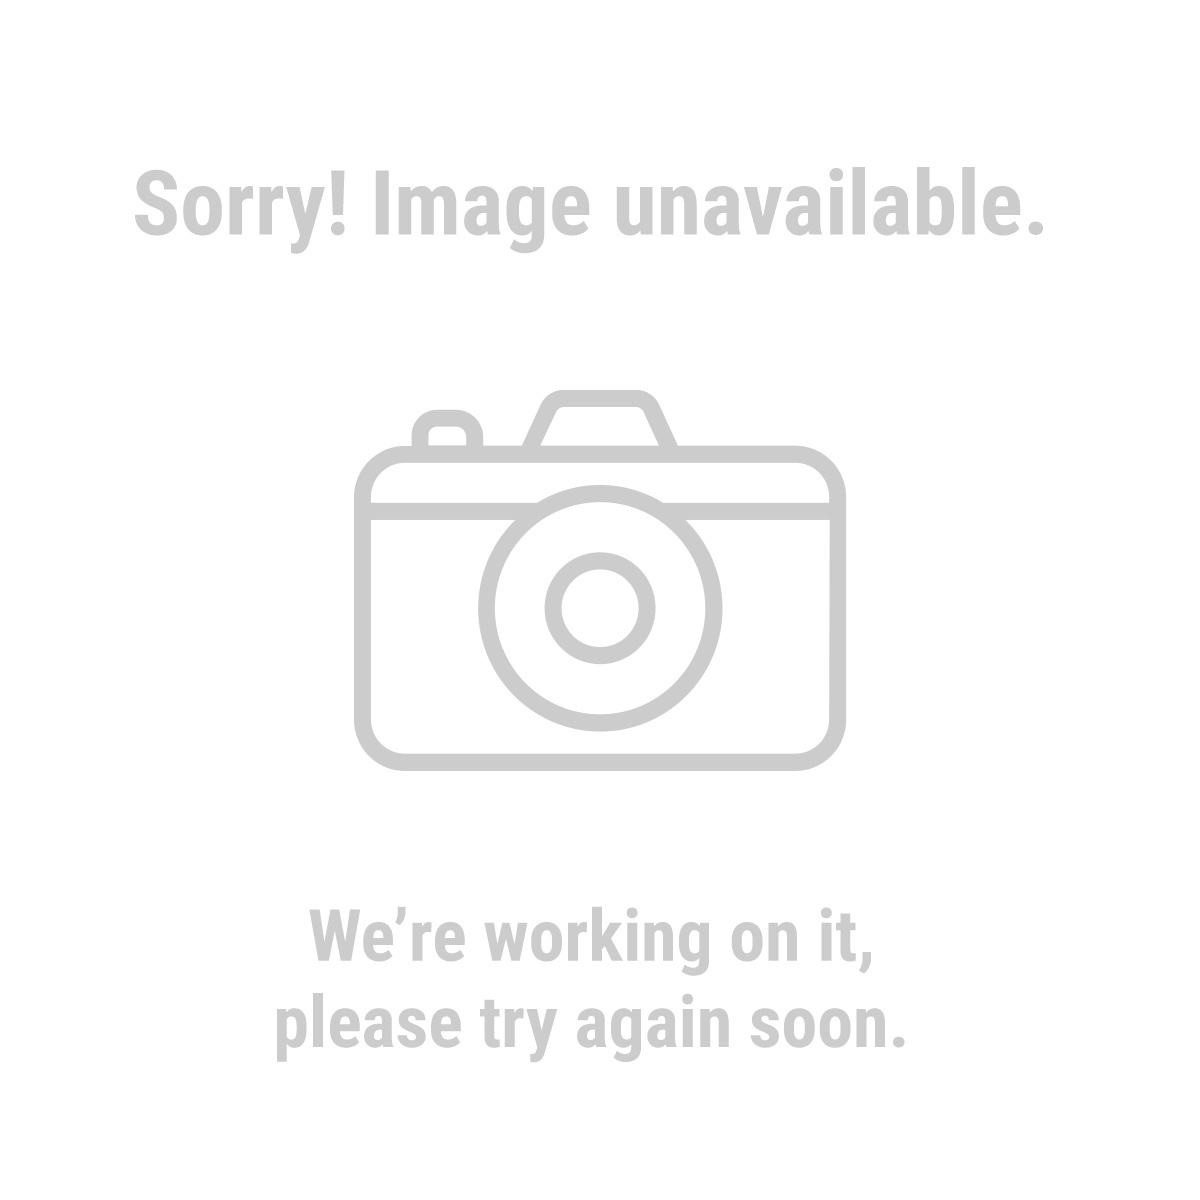 Warrior 69935 4 in. x 36 in. 80 Grit Sanding Belt 5 Pc